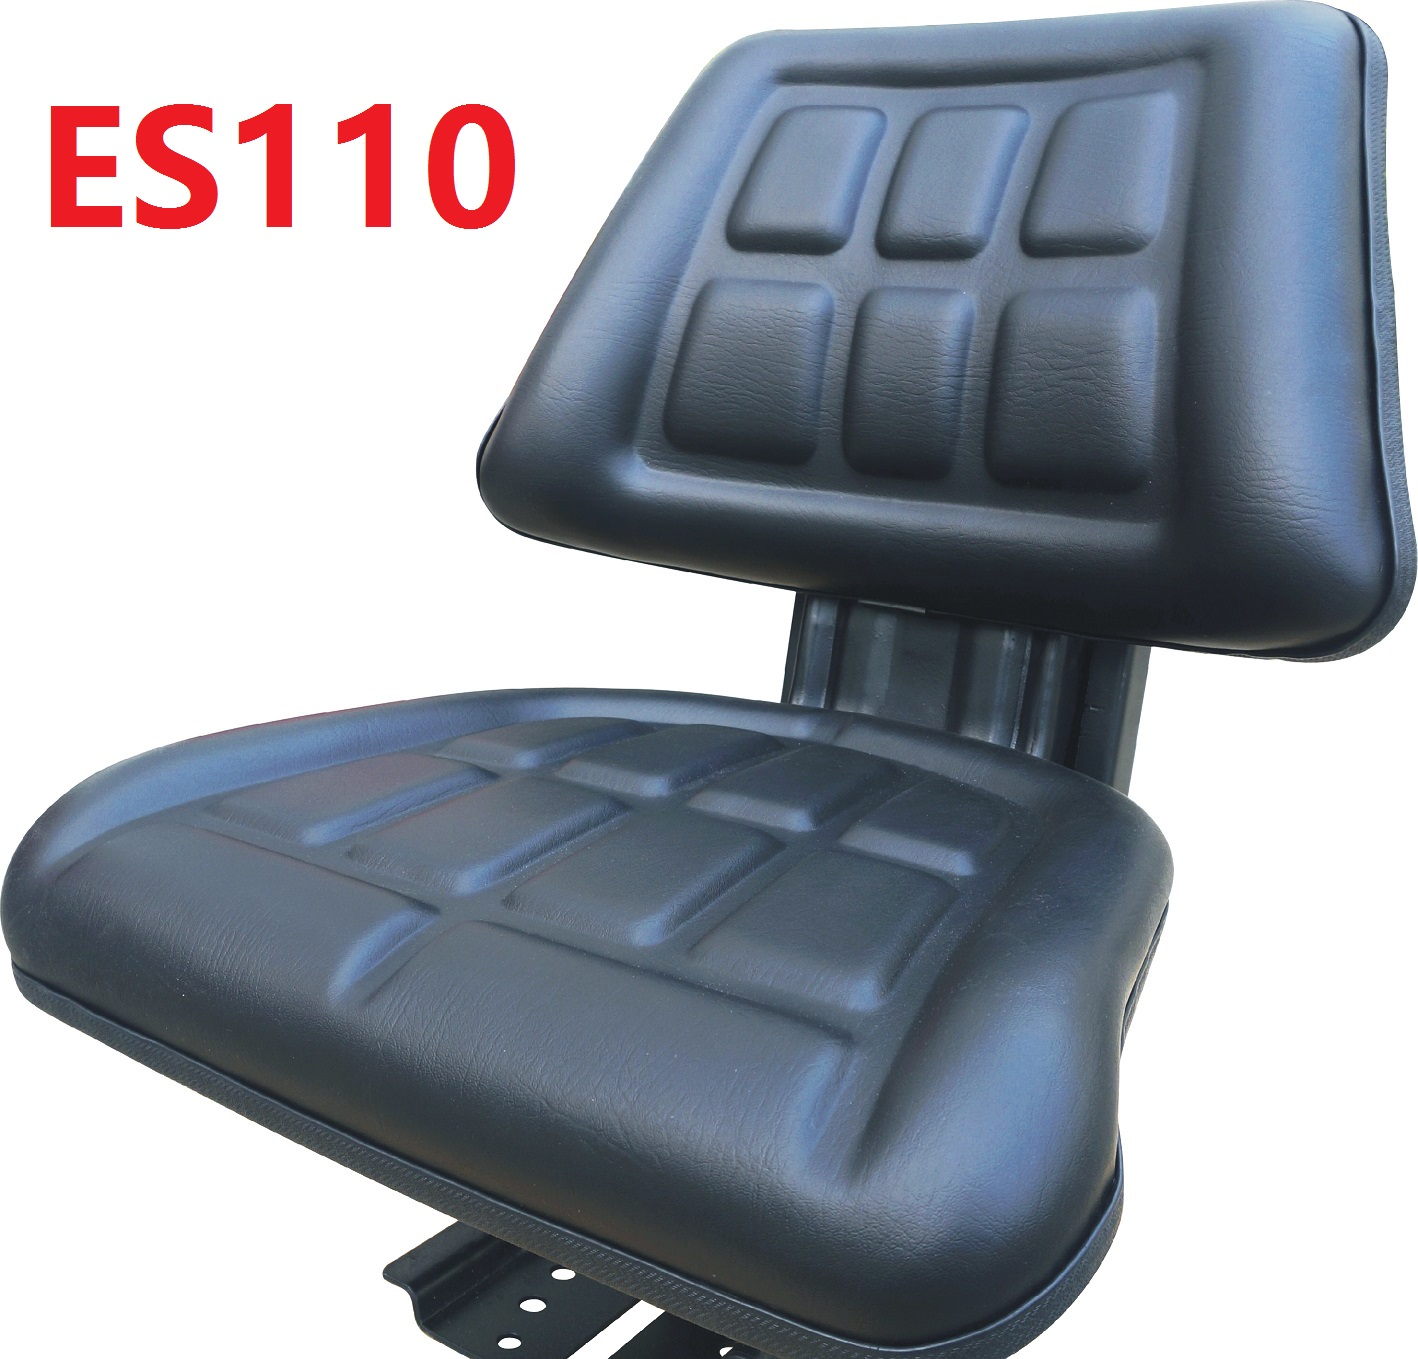 Durable Universal Suspension Replacement Seat ES110 Sweeper Farming Agricultural Tractor Mower Seat